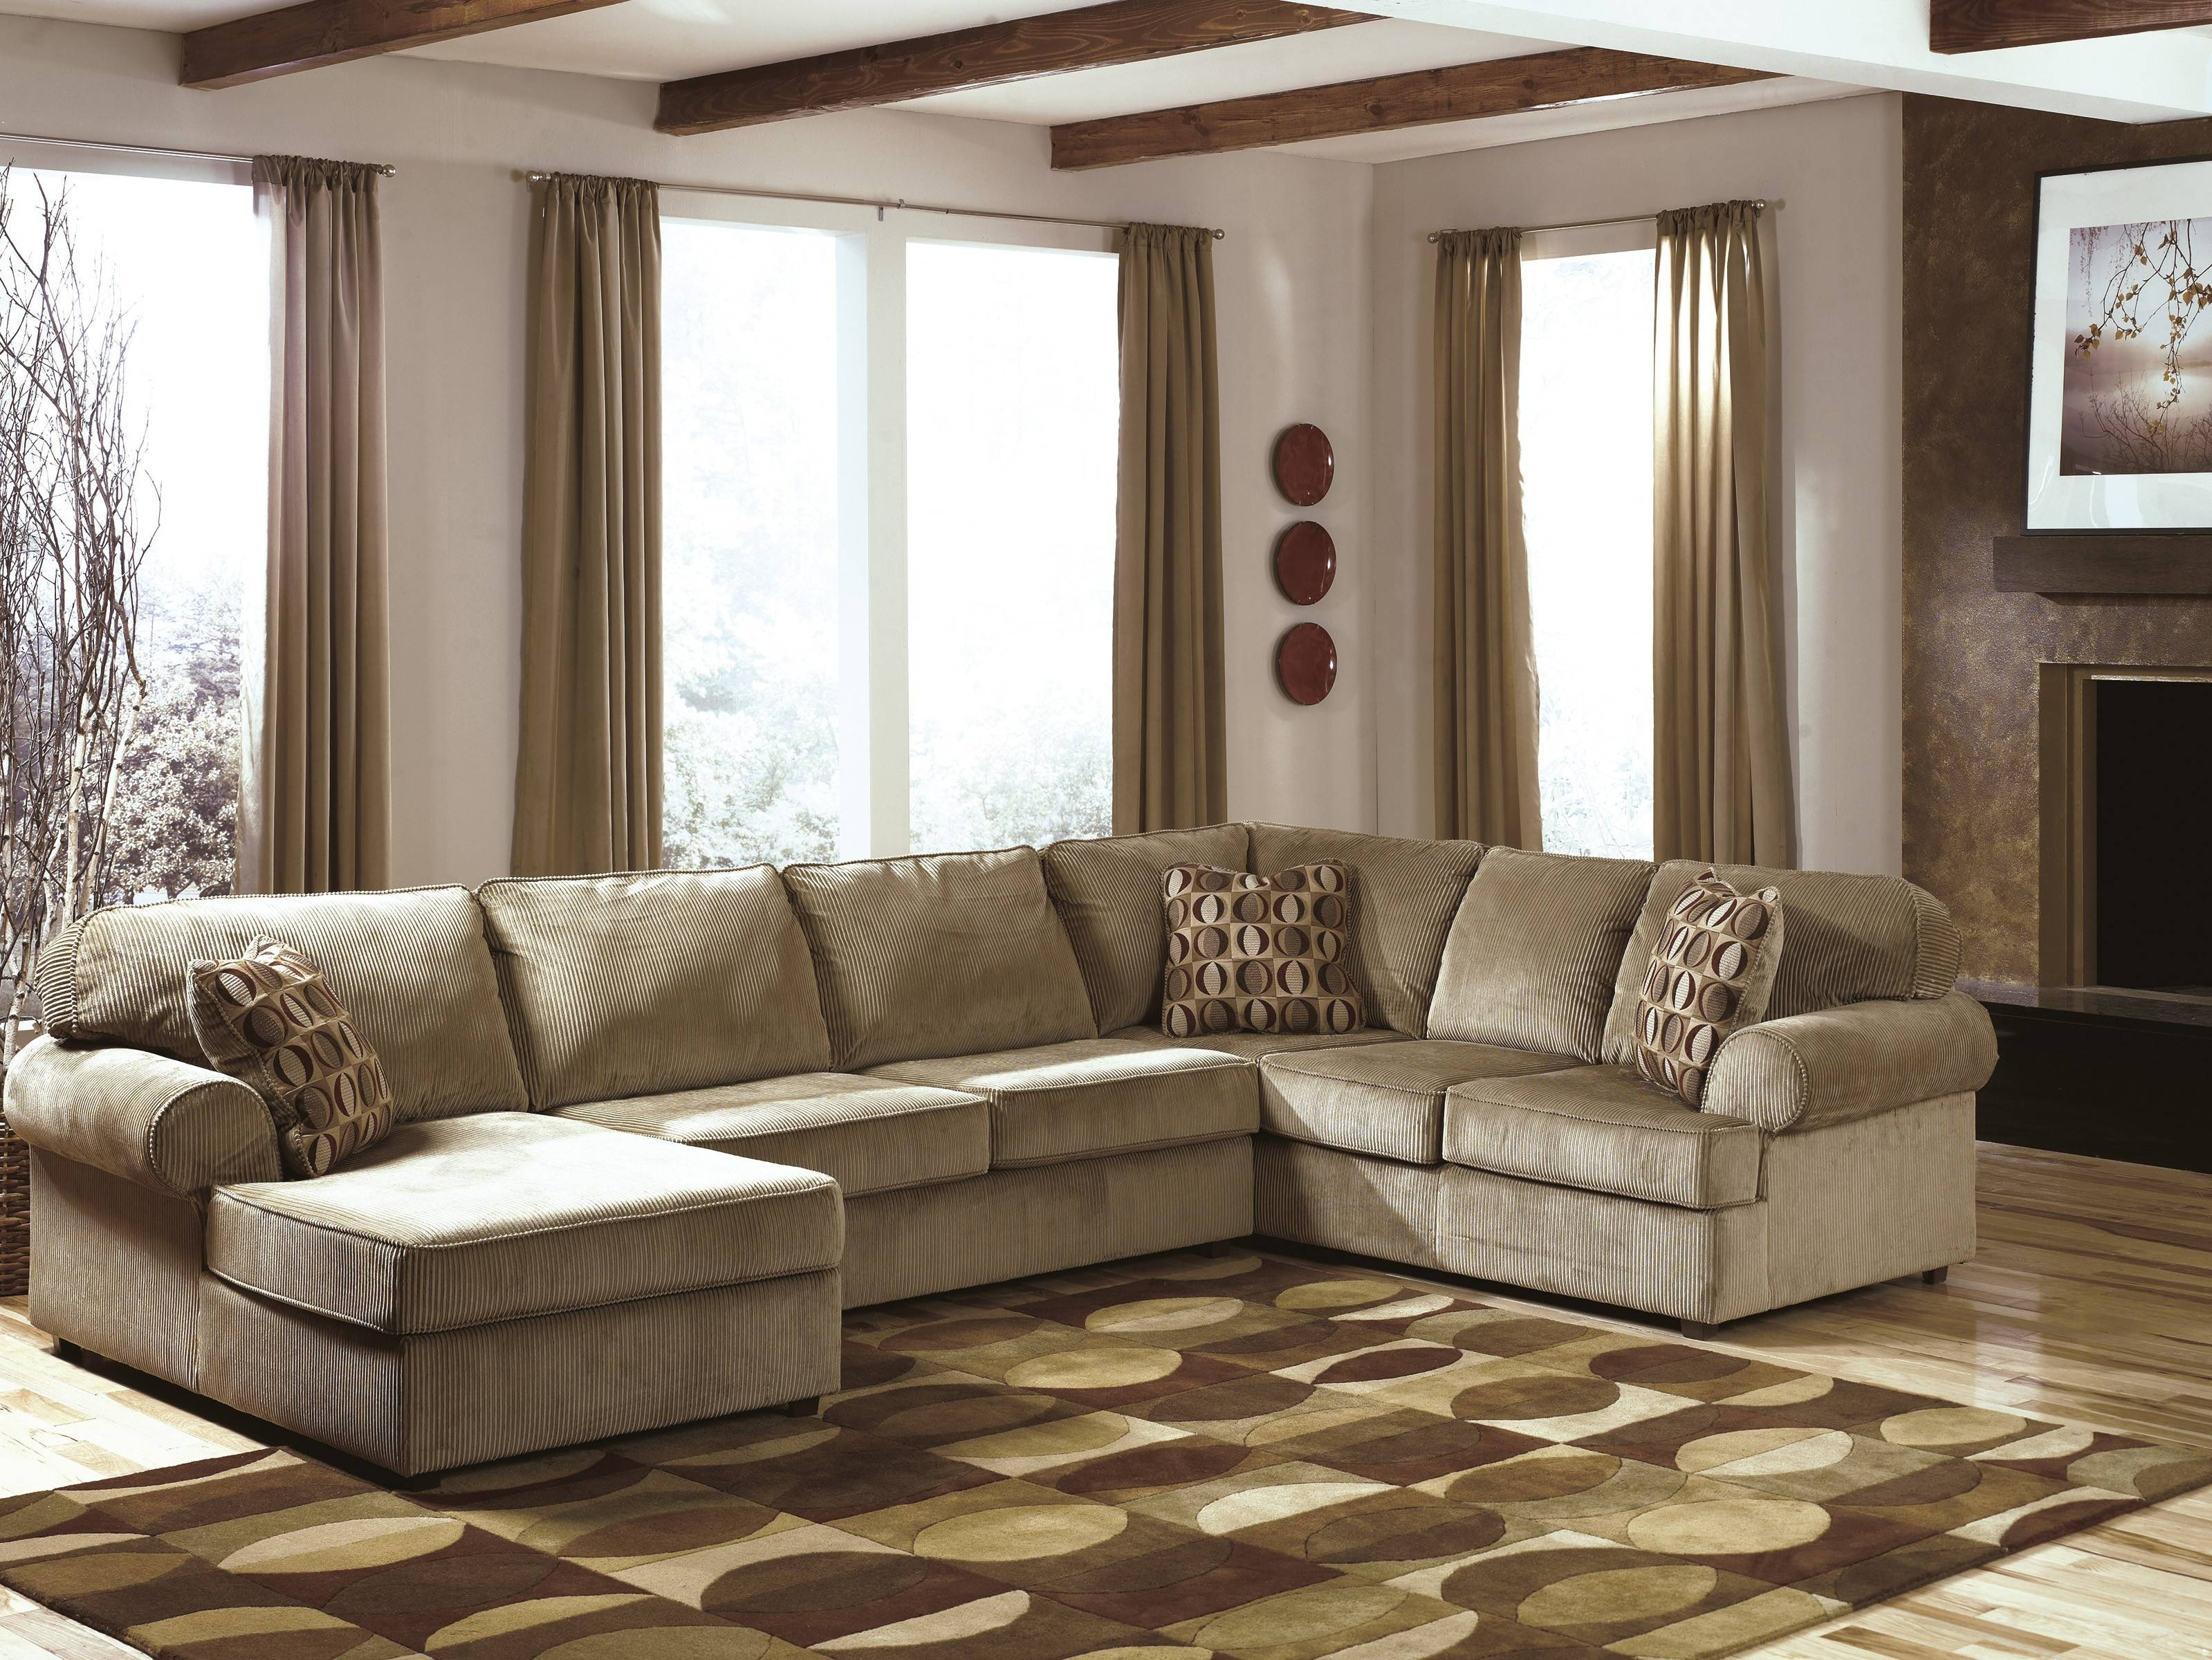 Furniture: Fantastic Sectional Couches With Recliners For Your with regard to C Shaped Sofa (Image 16 of 30)